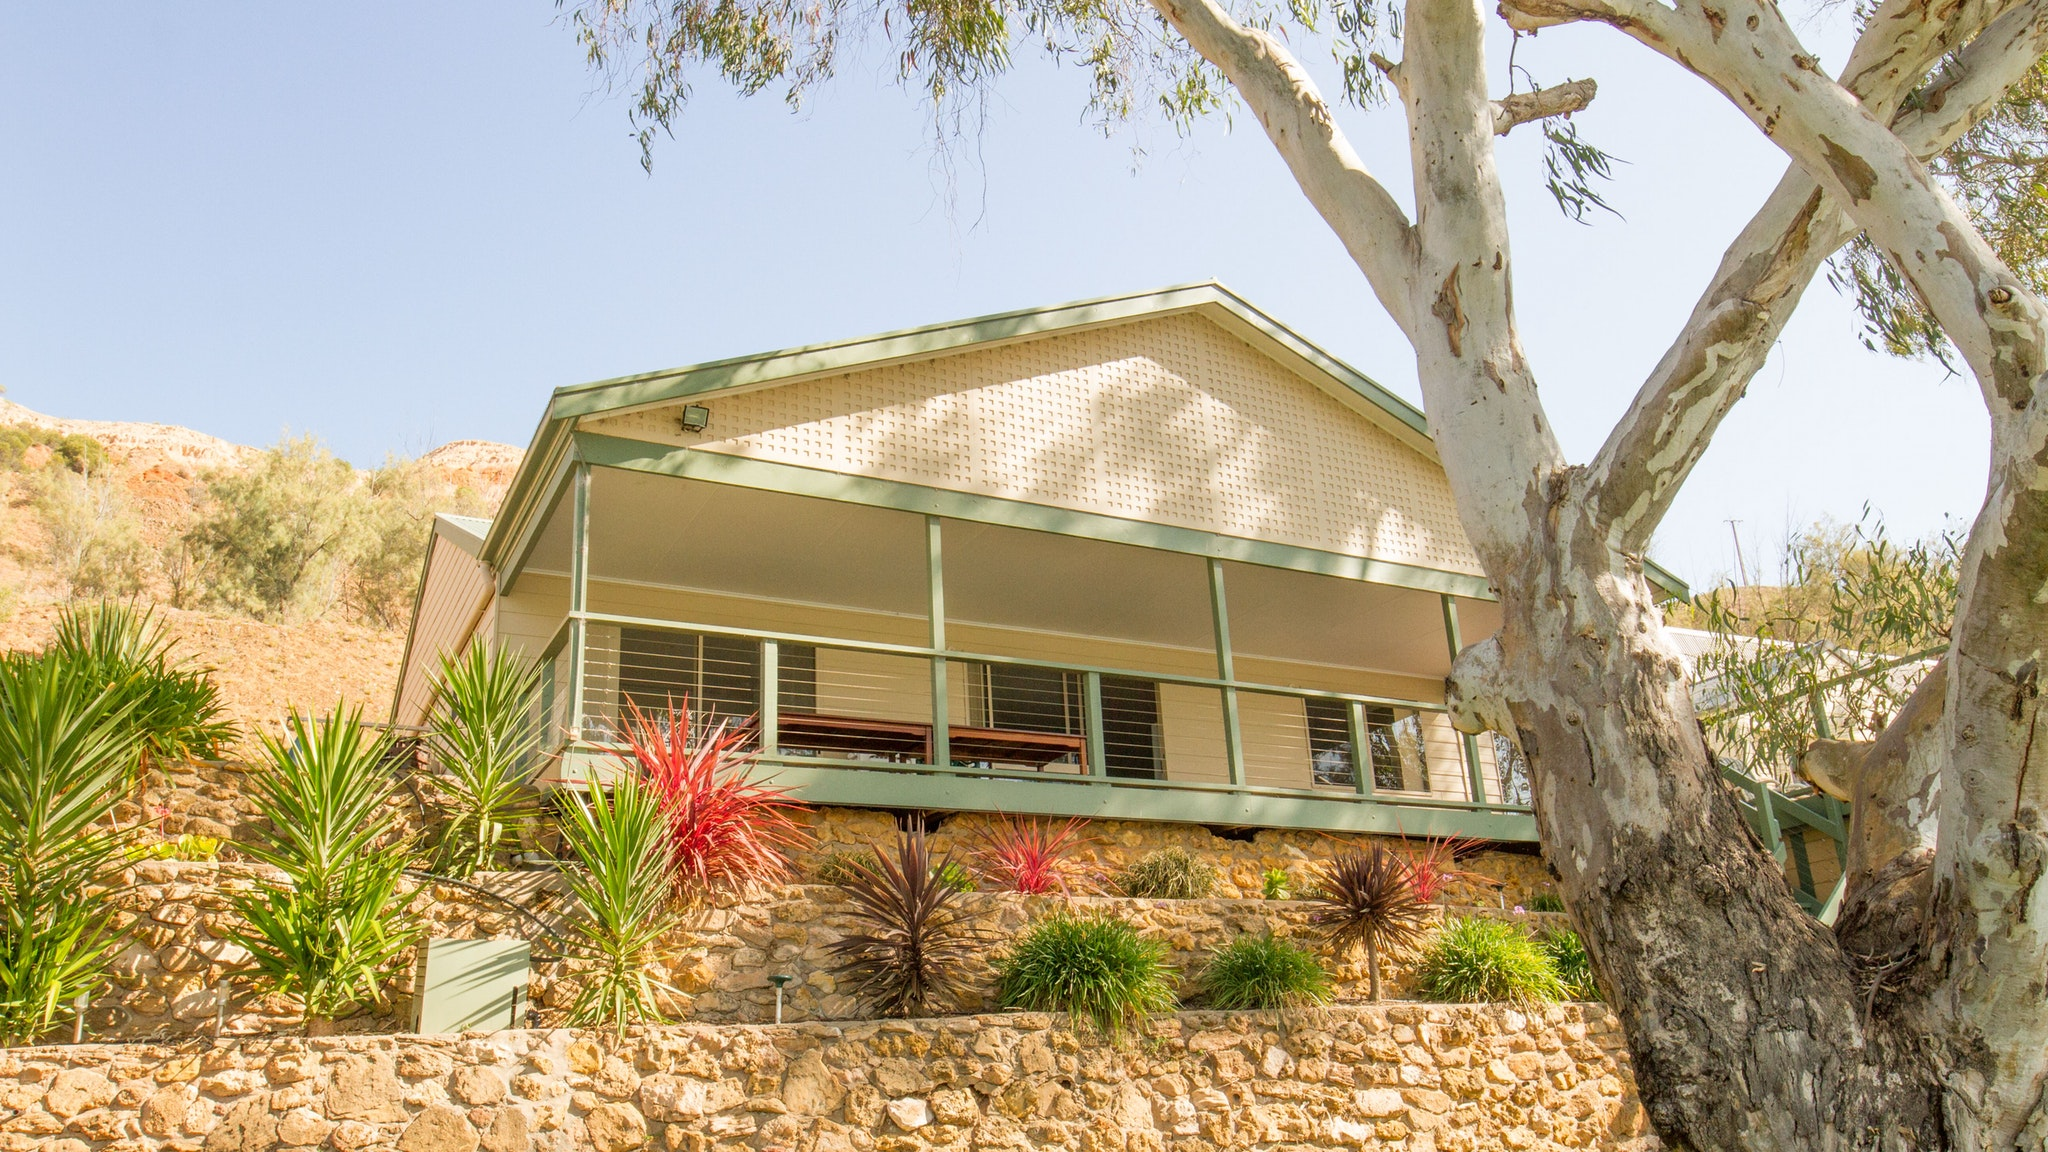 River Shack Rentals - Greenbanks Dr - Australia Accommodation